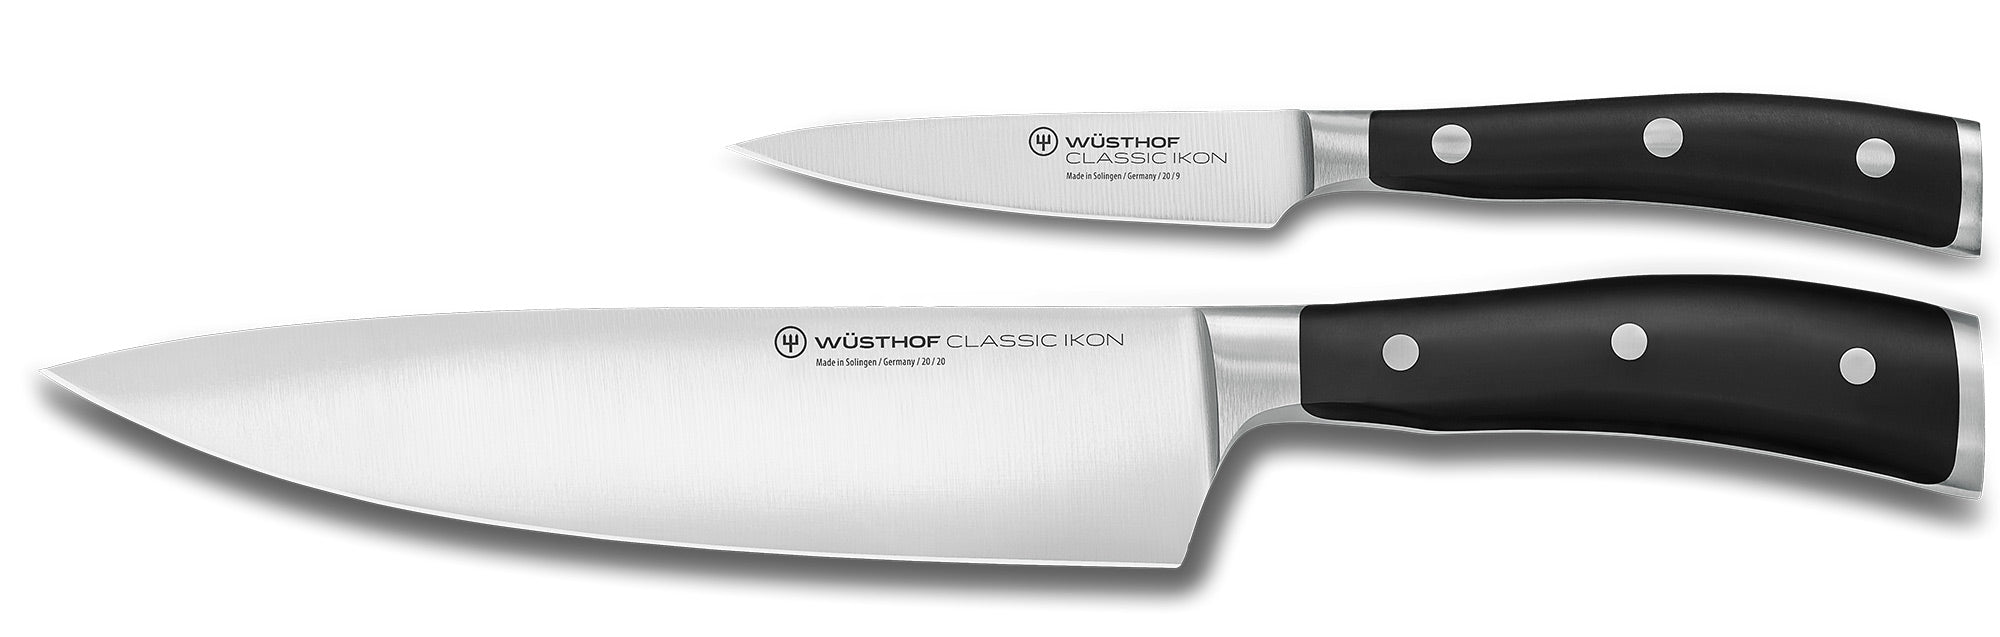 Wusthof Classic IKON 2-piece Knife Set, Chef Knife and Paring Knife - 9606